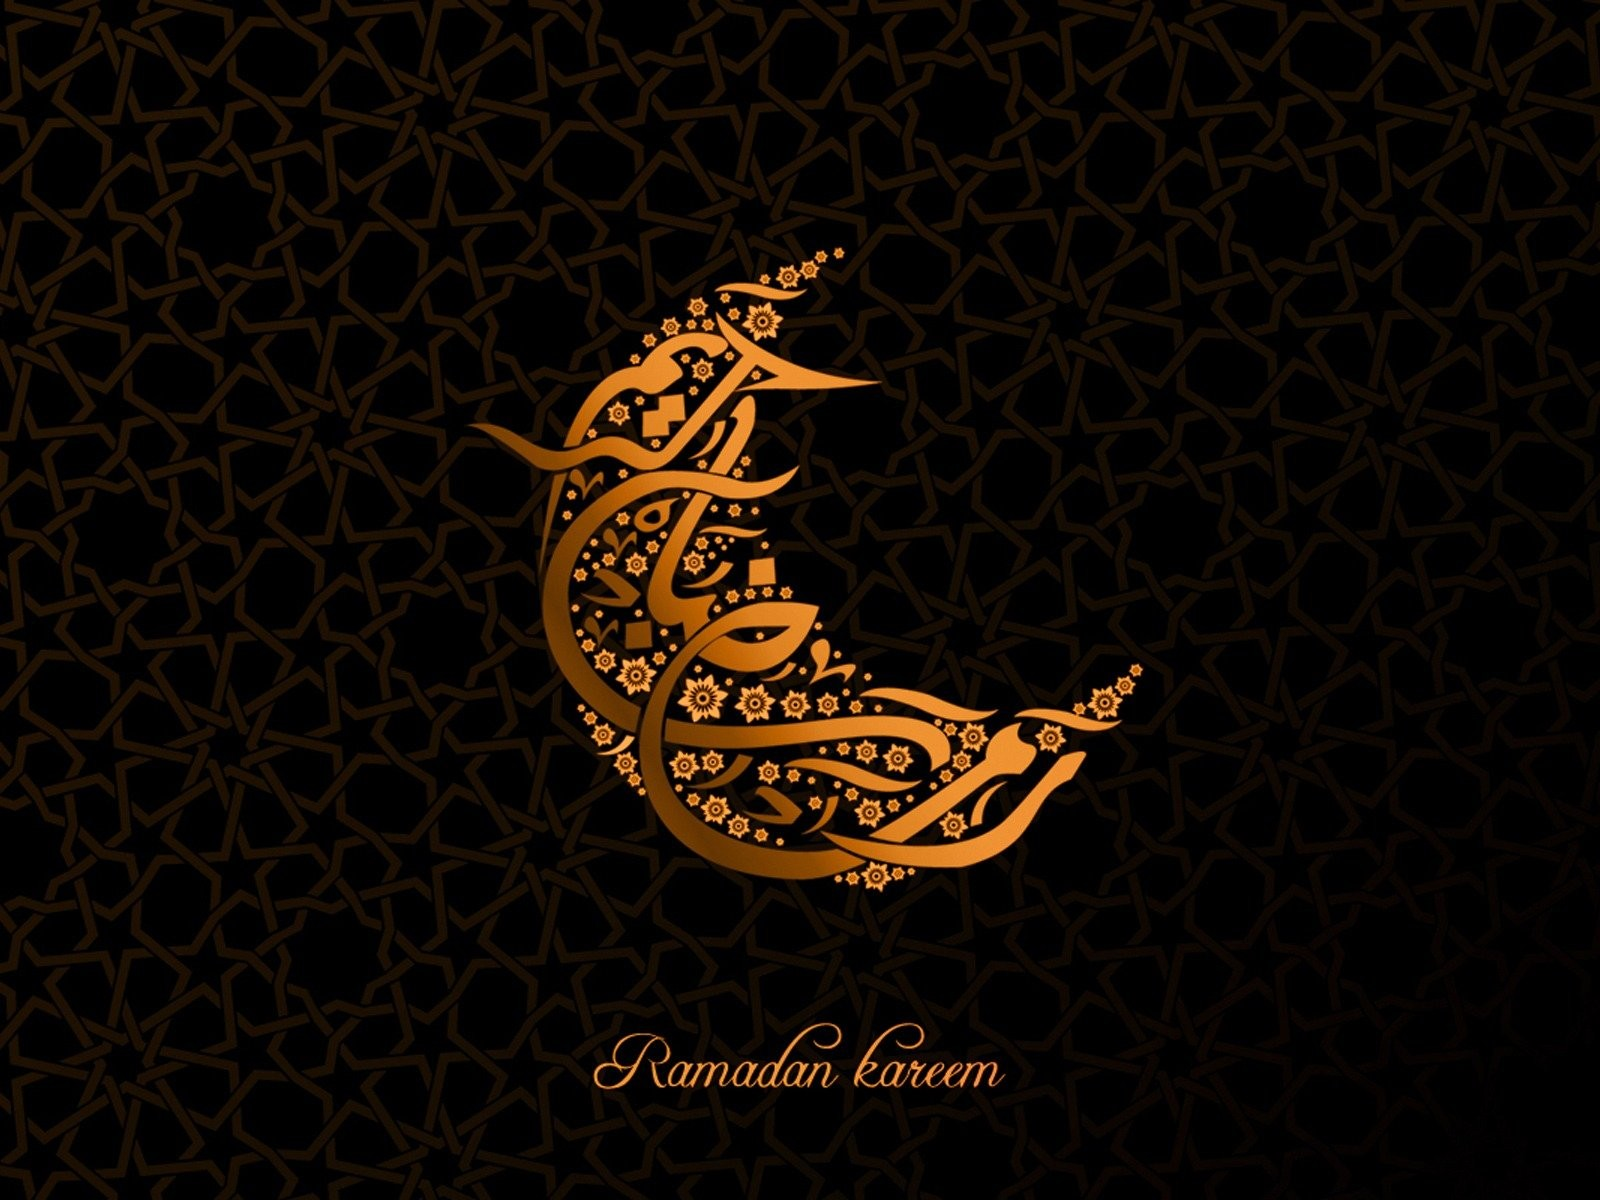 Hd wallpaper ramzan mubarak - Hd Wallpaper Ramzan Mubarak Ramadan Mubarak Hd Wallpaper 2017 Free Download Download